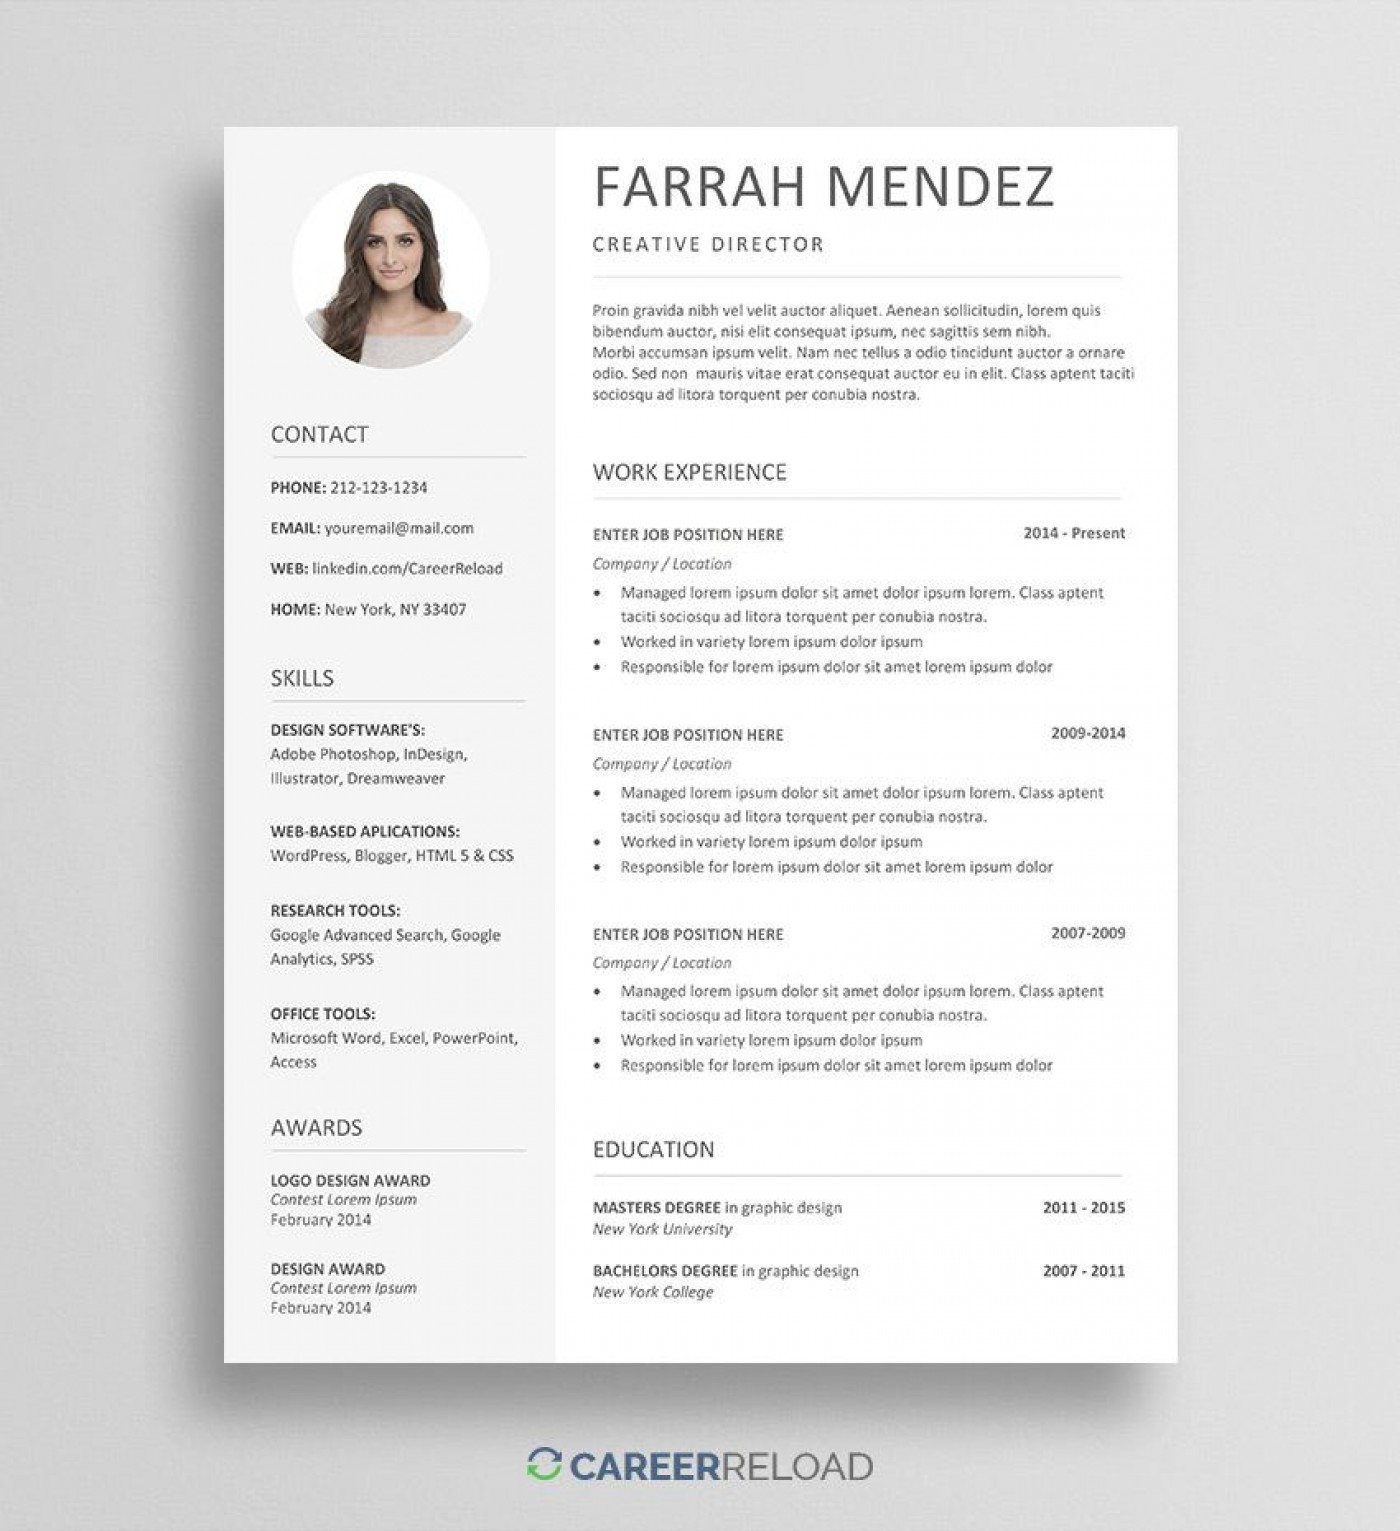 003 Formidable Download Resume Template Word 2007 Highest Clarity 1400